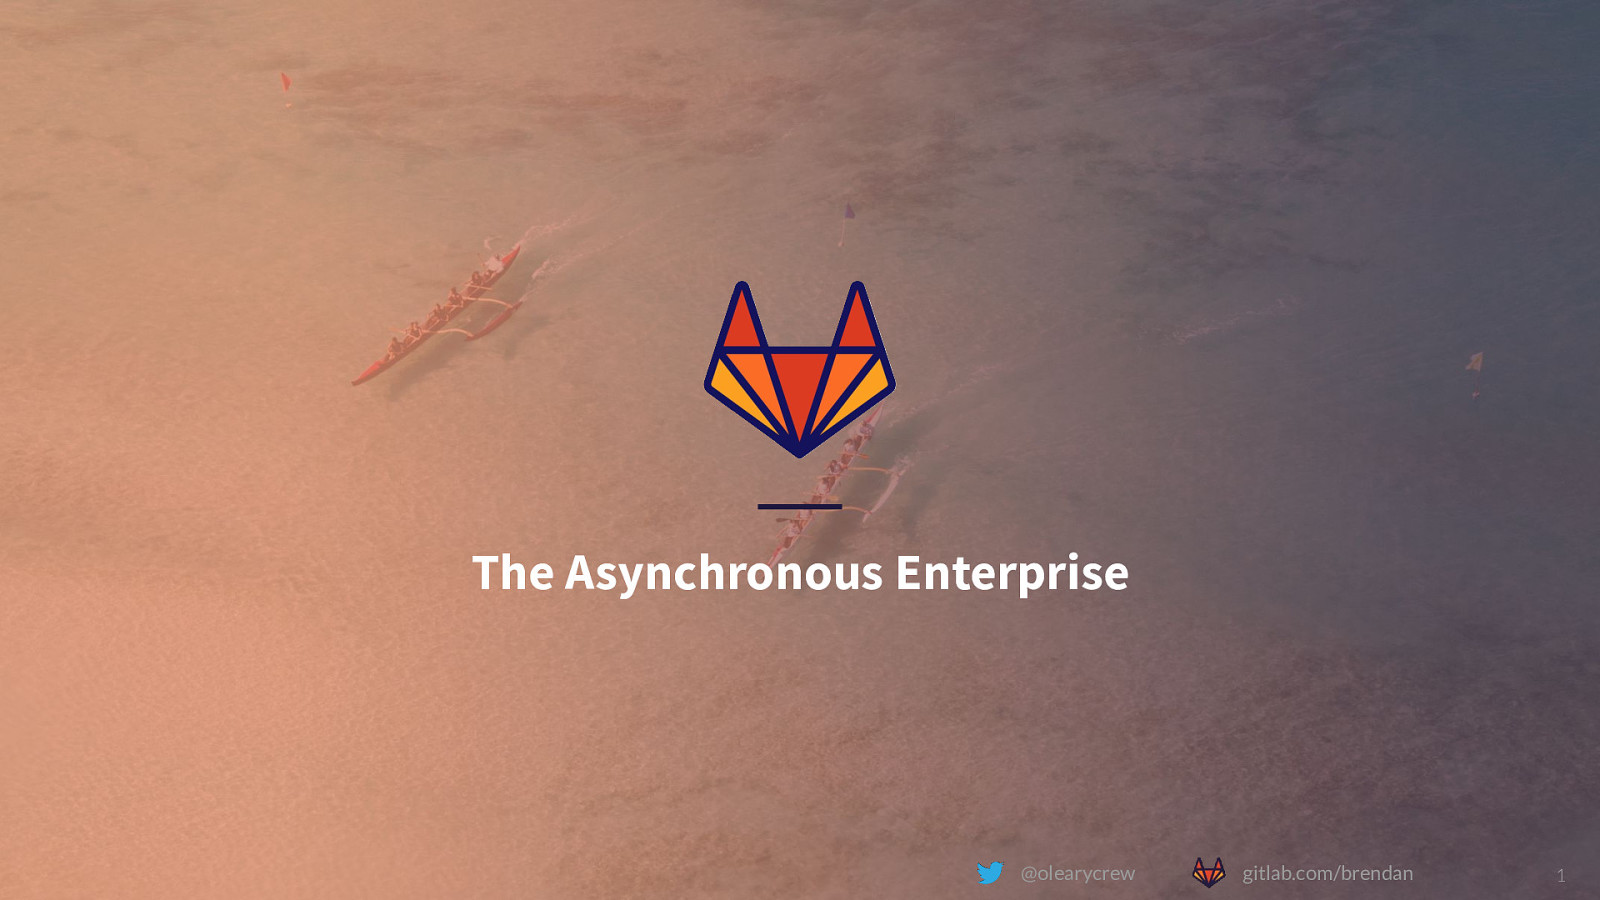 The Asynchronous Enterprise